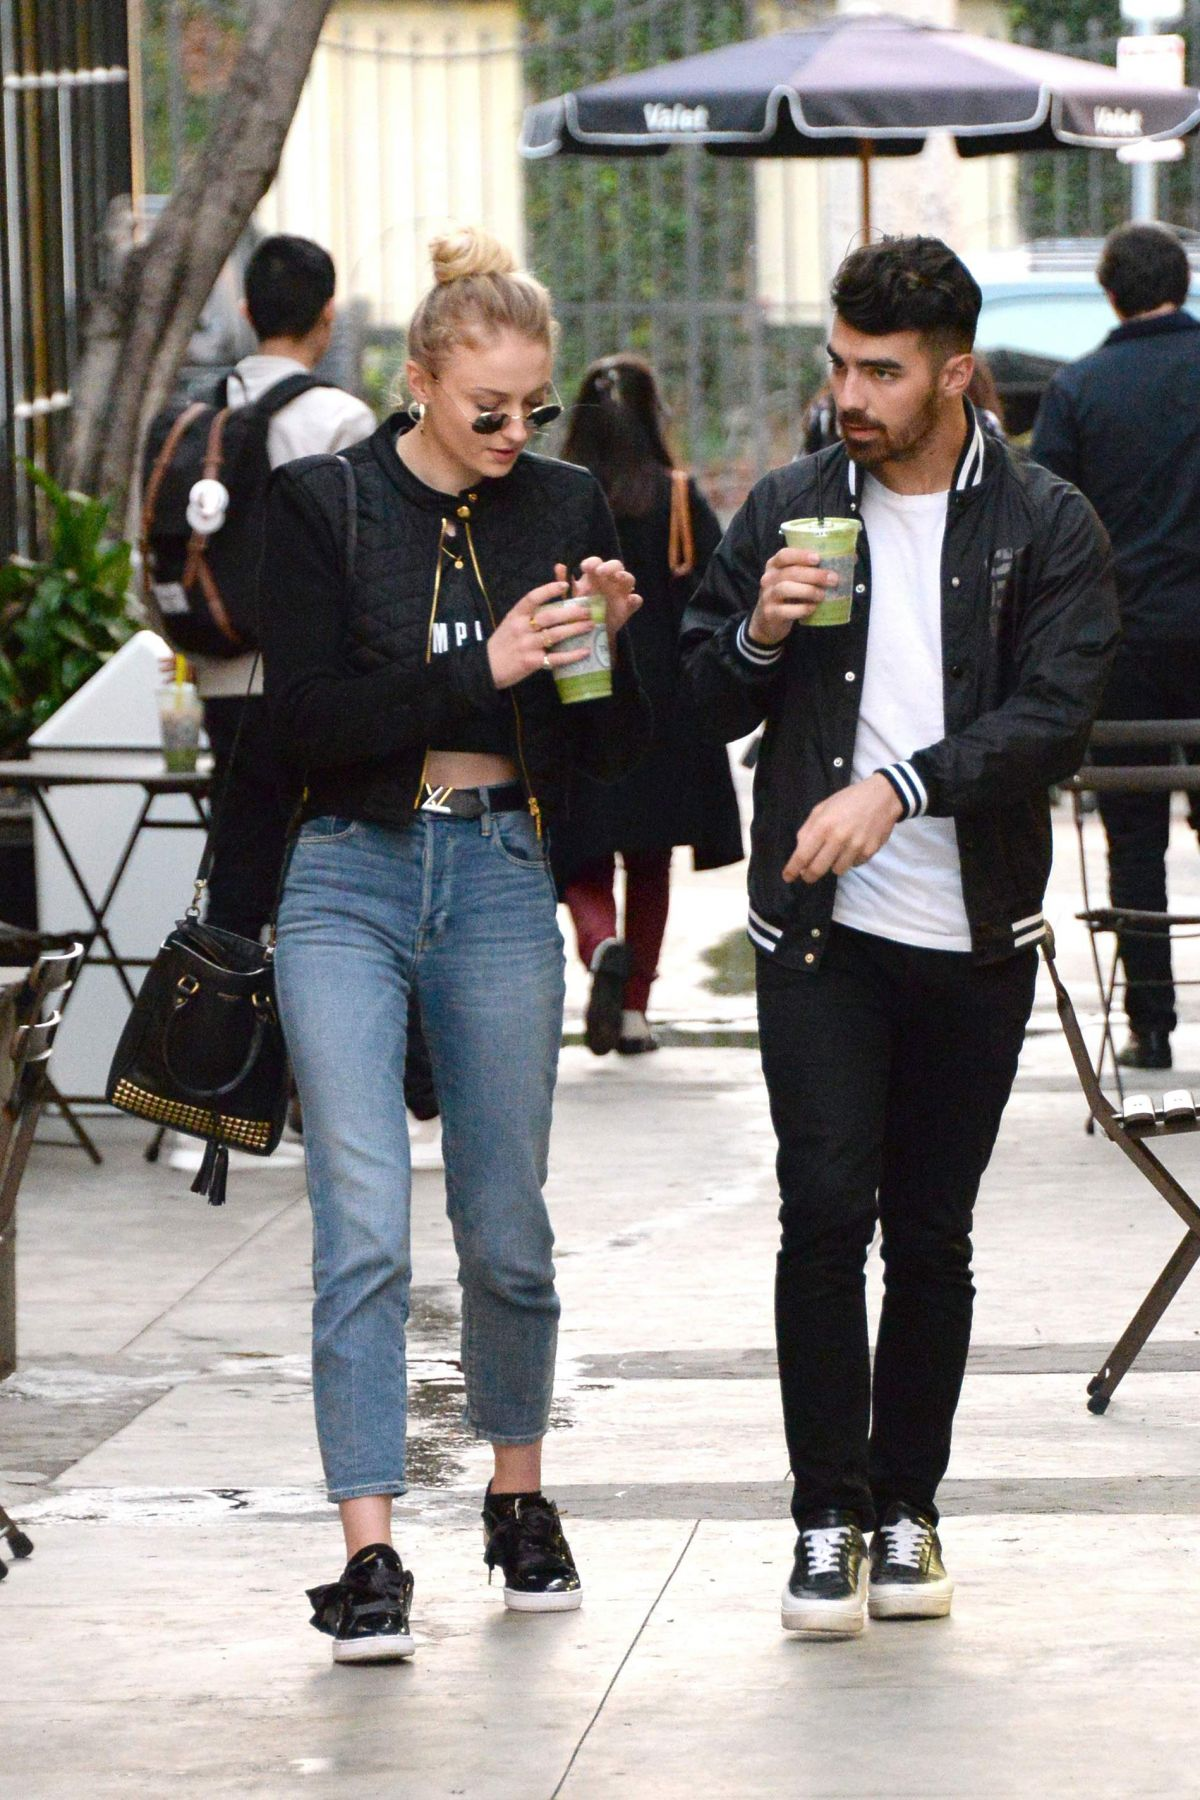 Sophie Turner Out in Beverly Hills with her boyfriend sophie-turner-out-in